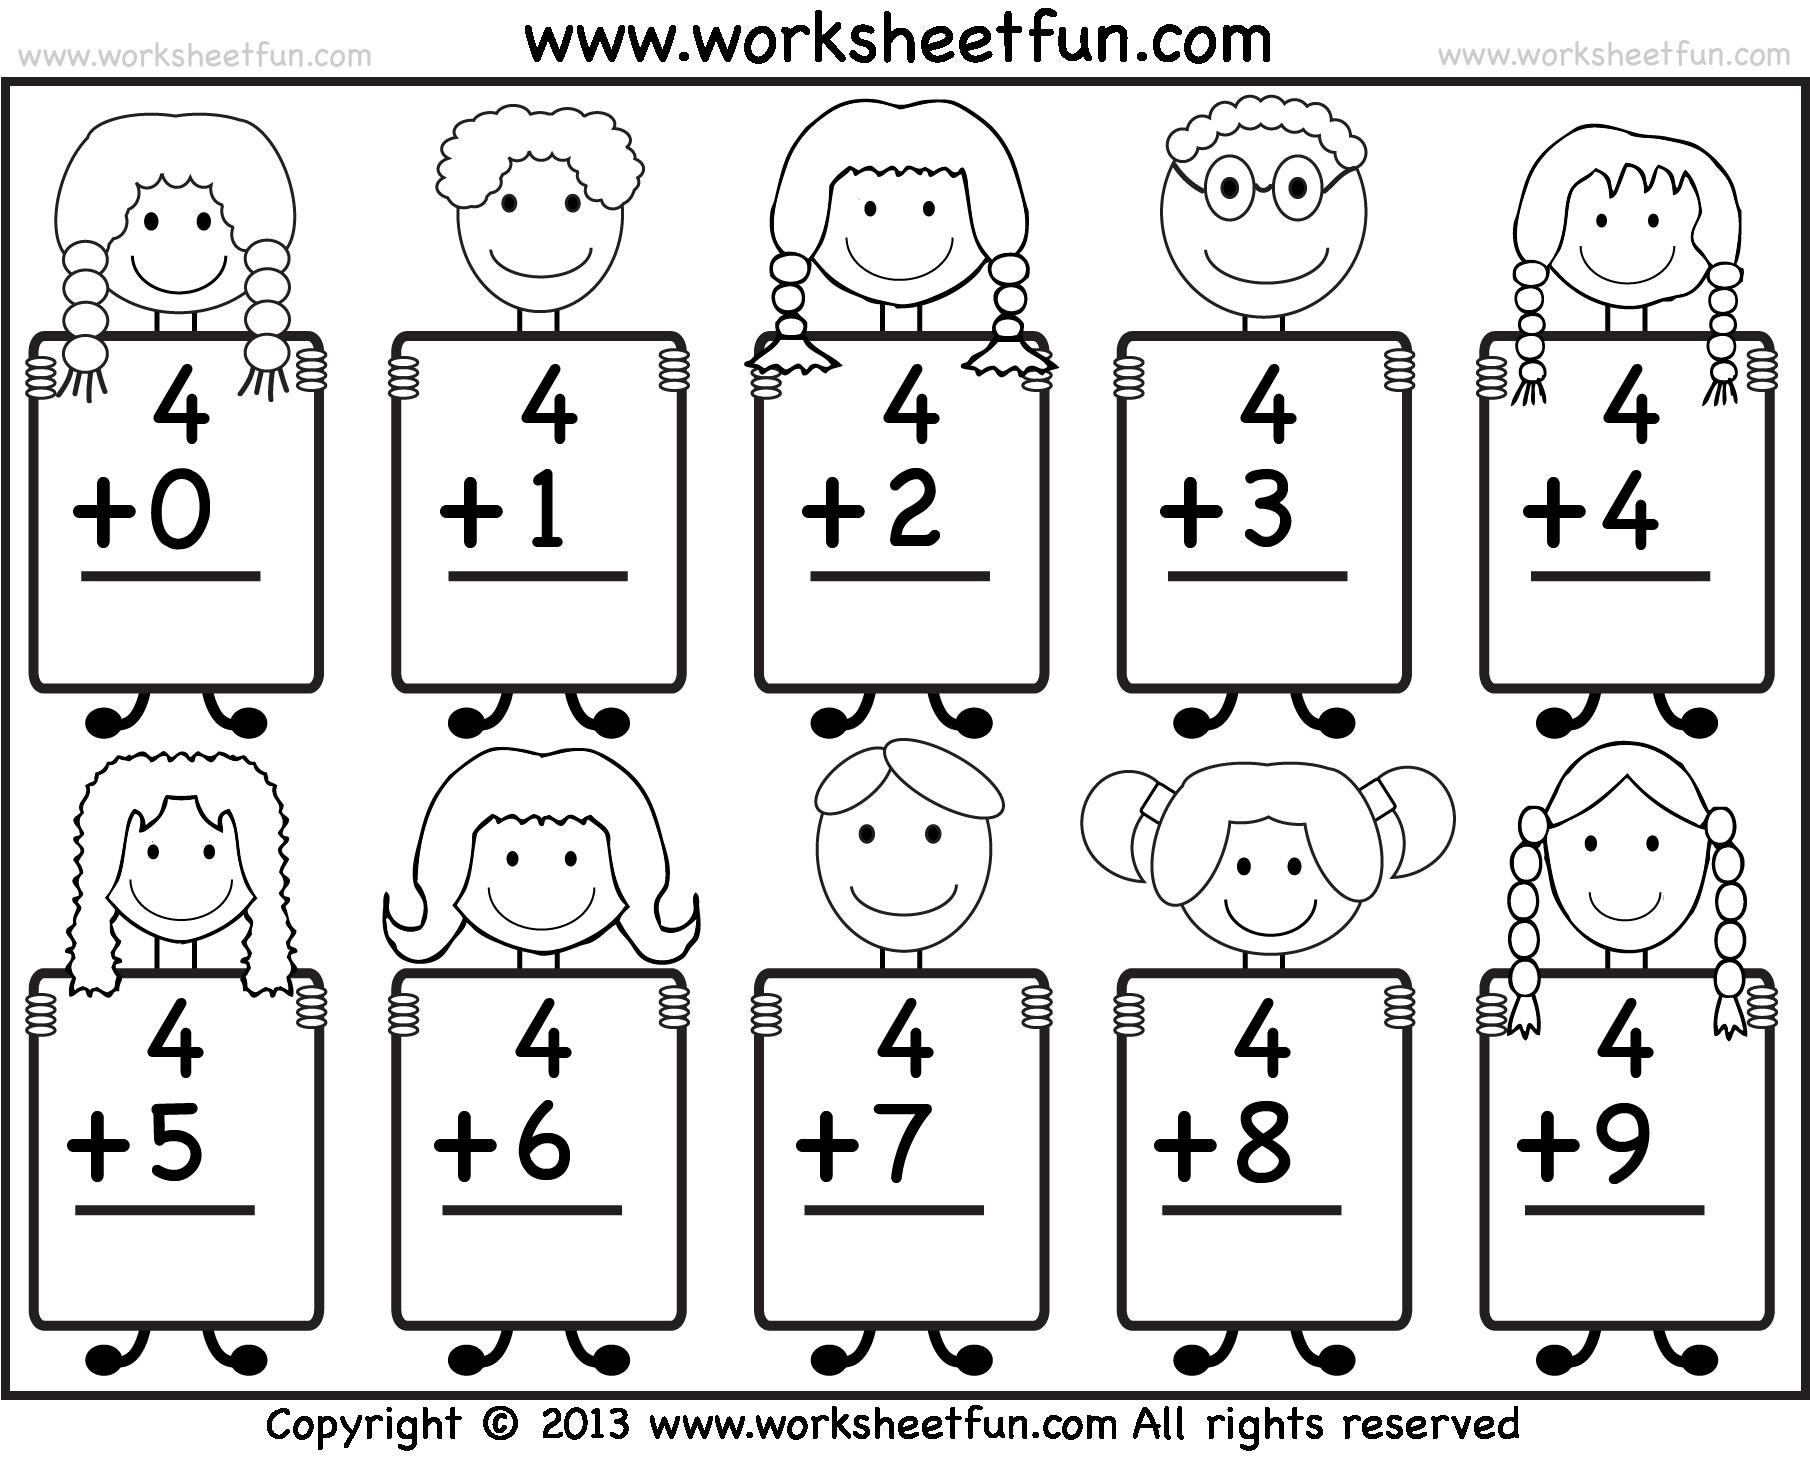 freeprintablemathworksheetsforkindergartenaddition1png – Maths Worksheets for Kindergarten